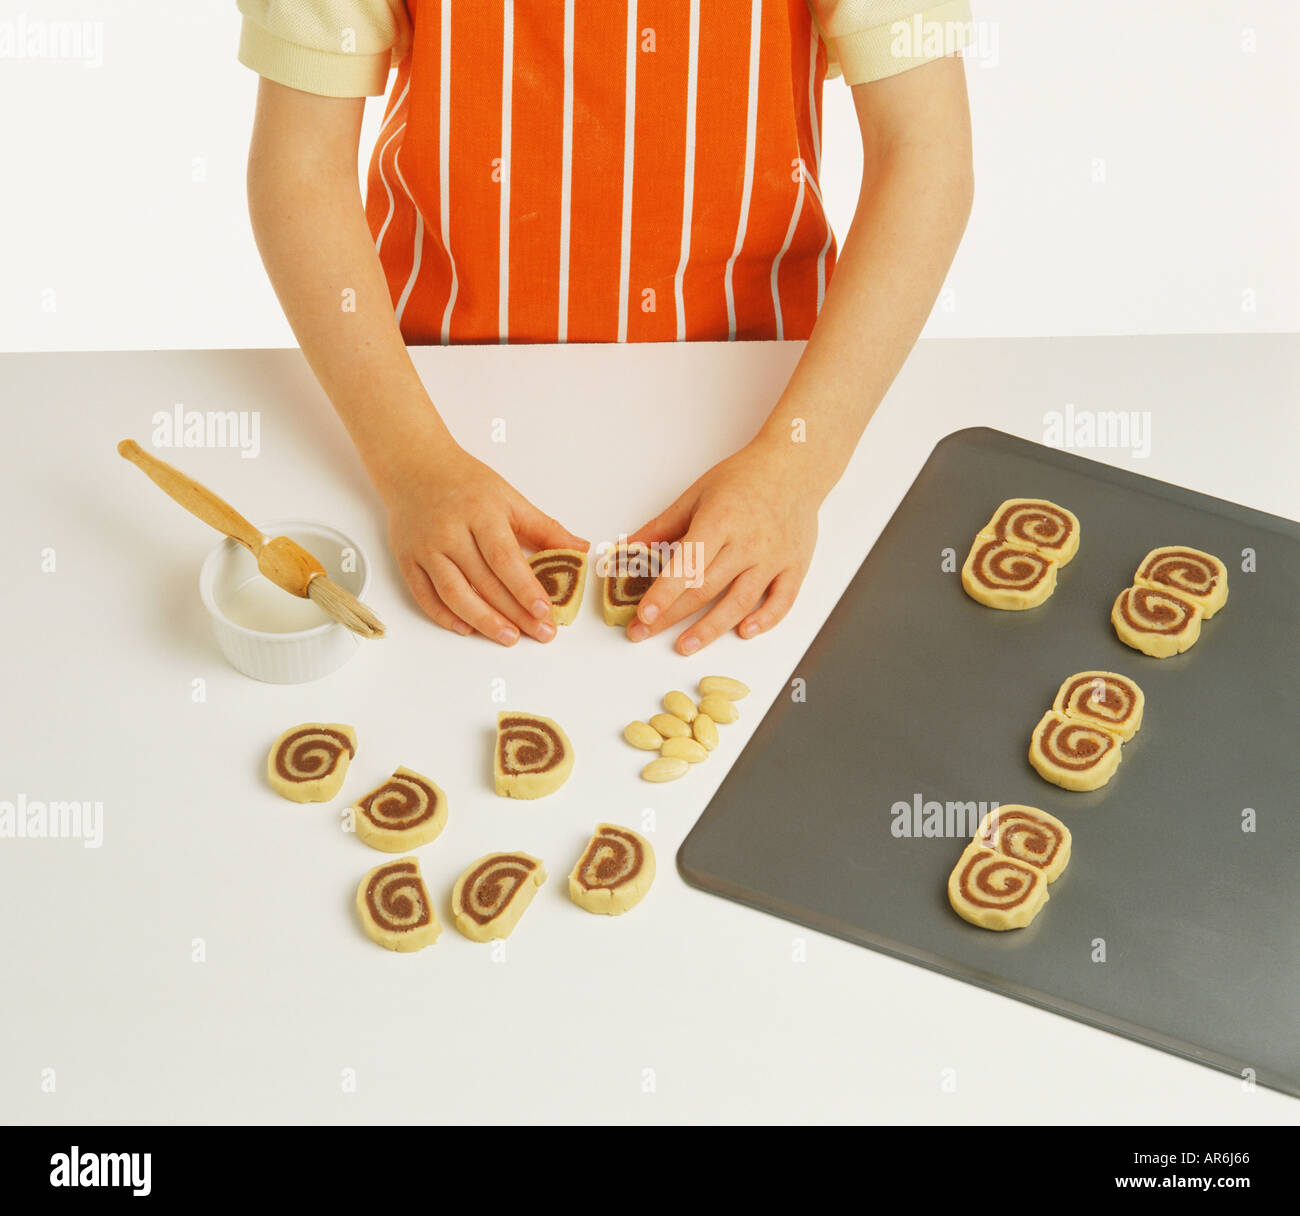 hand model wearing orange and white striped apron cook joining two biscuits to make owls eyes